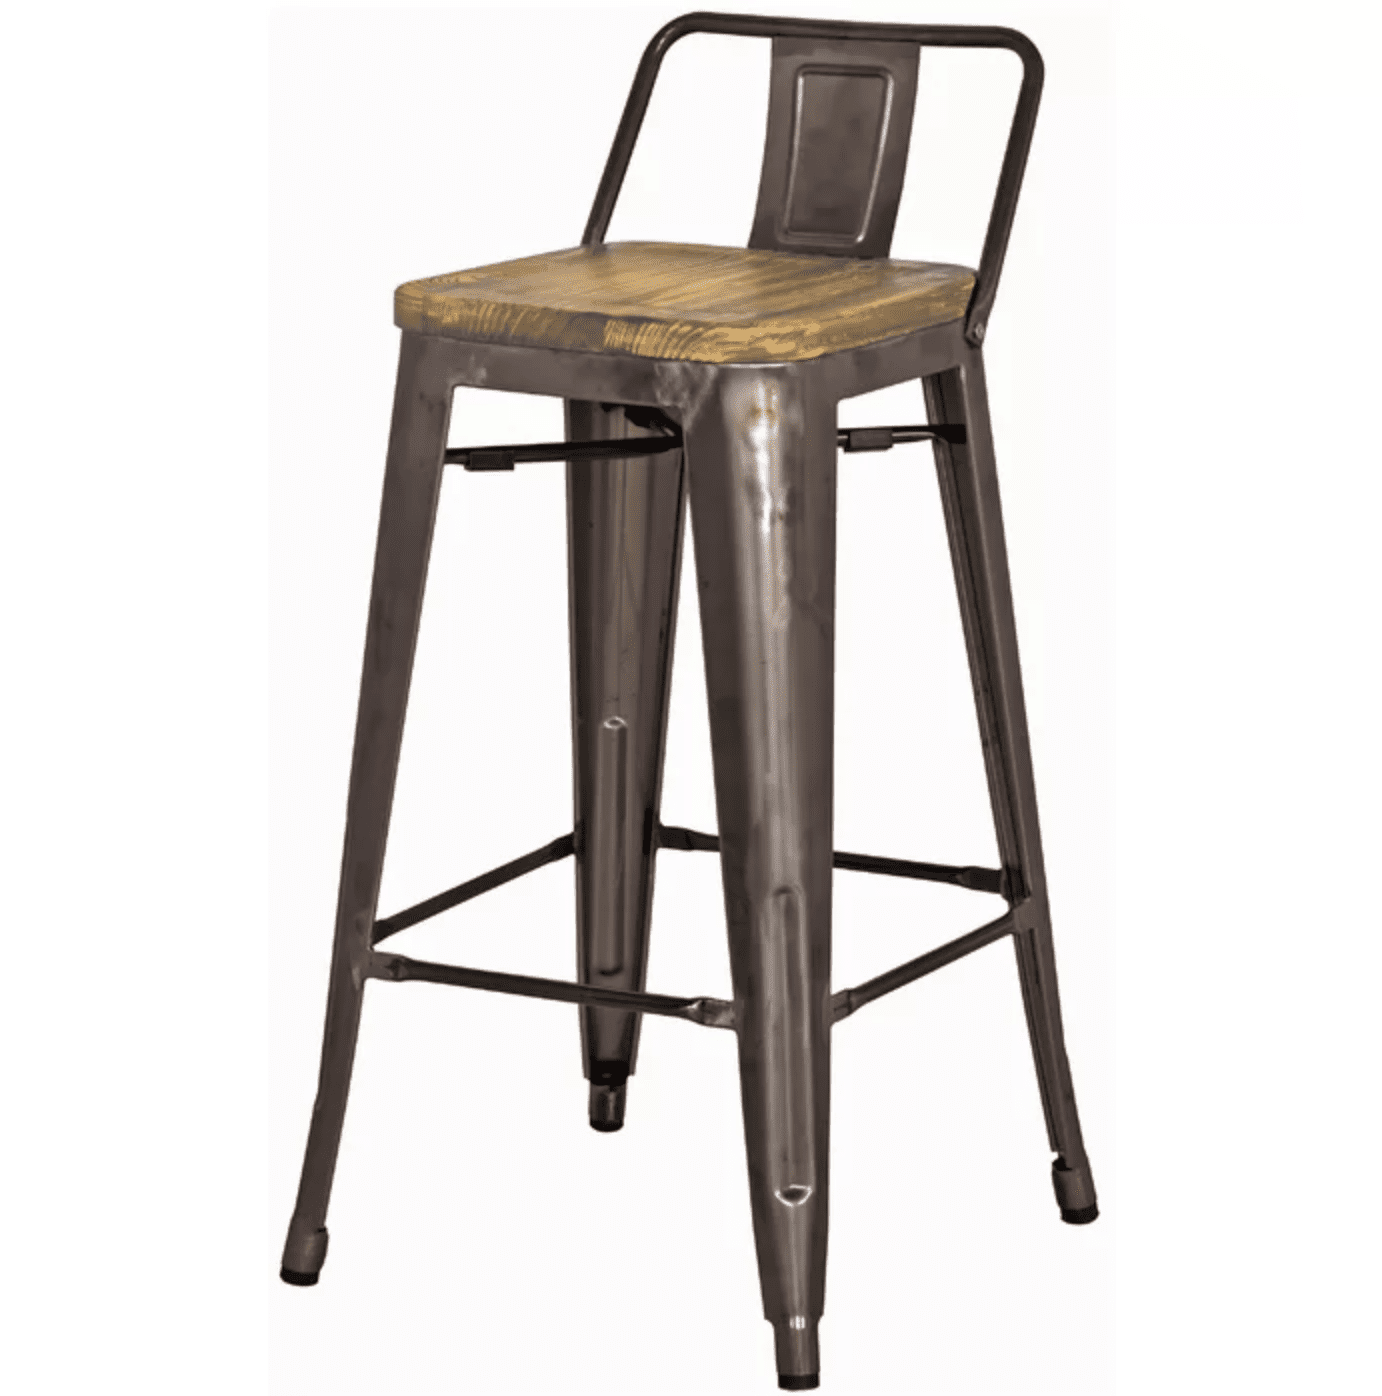 Miraculous 25 Cheap Bar Stools To Shop For Your Home Squirreltailoven Fun Painted Chair Ideas Images Squirreltailovenorg